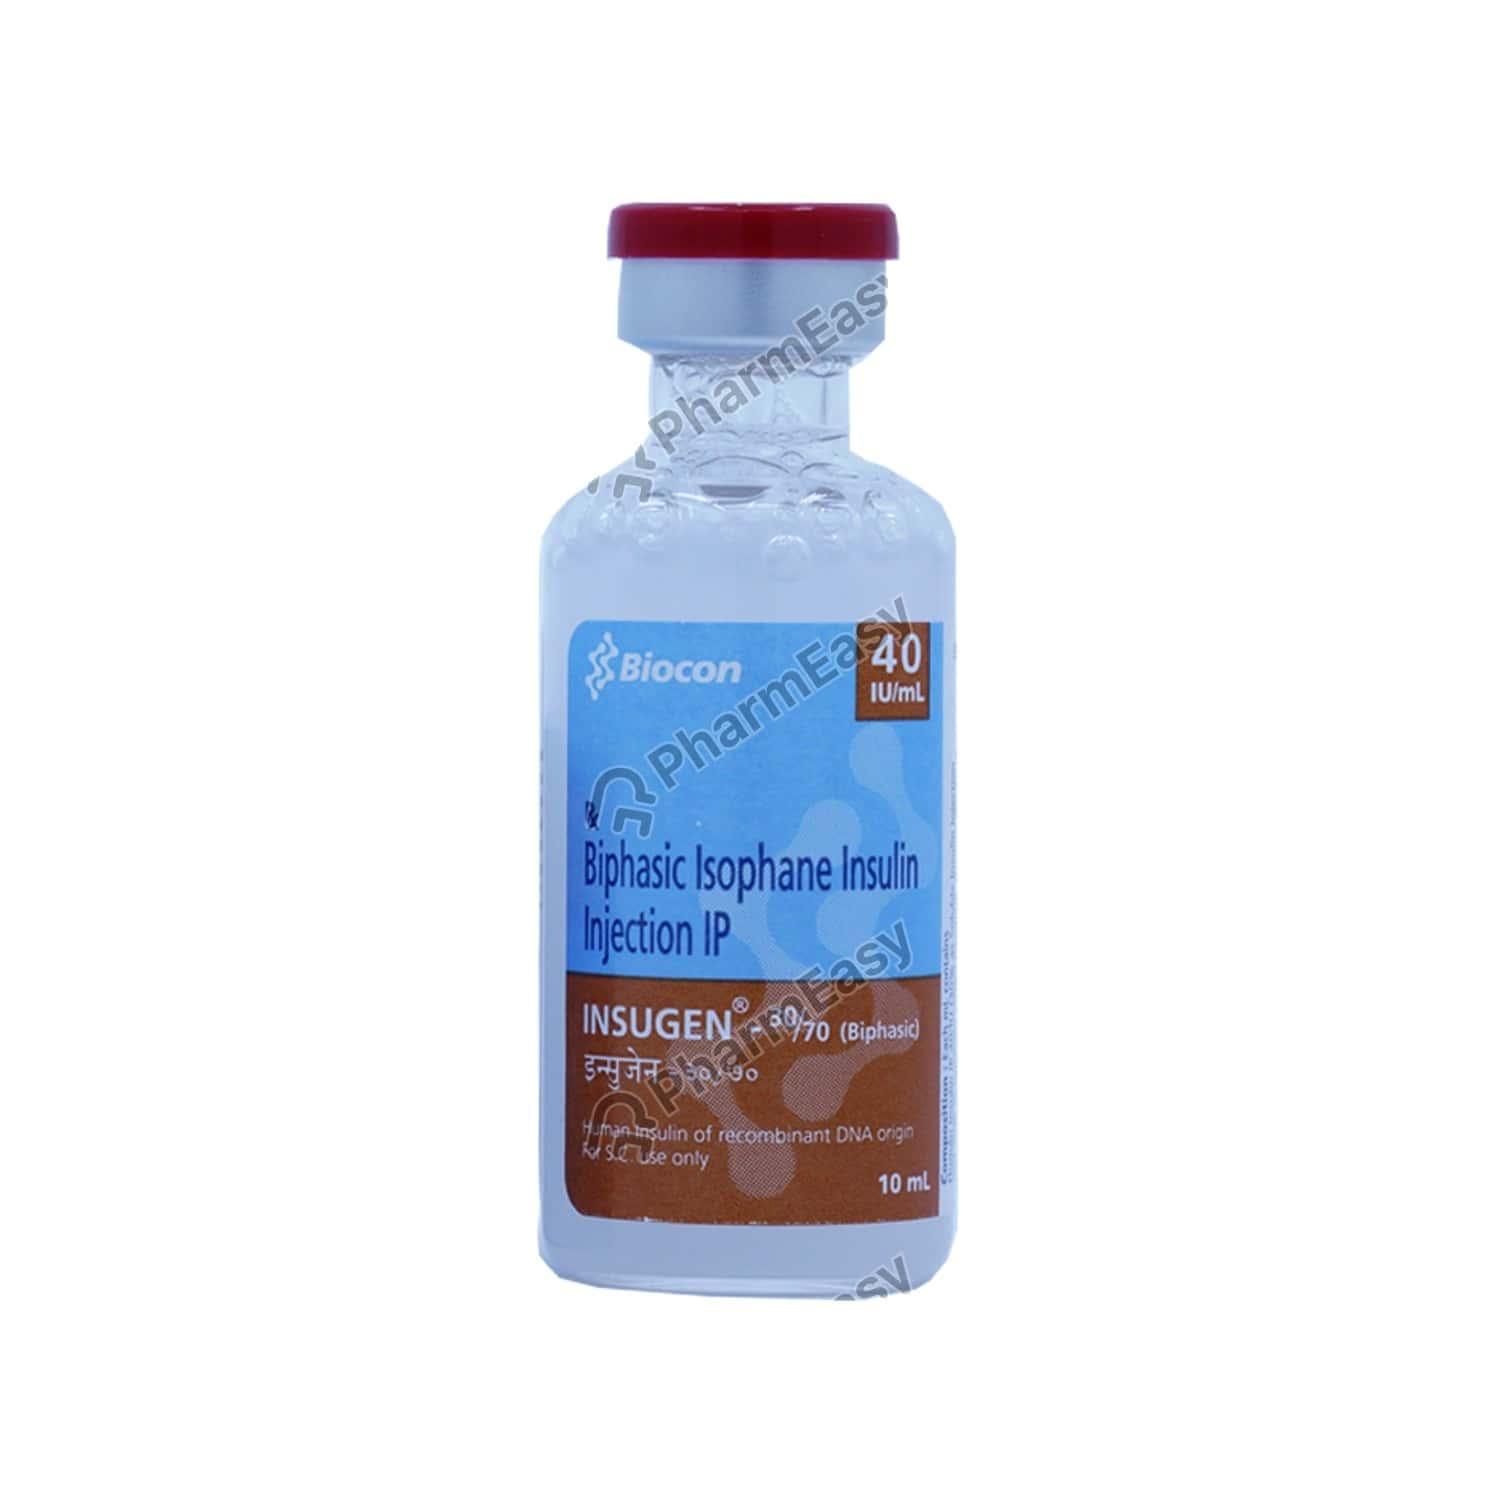 Insugen 30/70 40iuvial Of 10ml Solution Forinjection